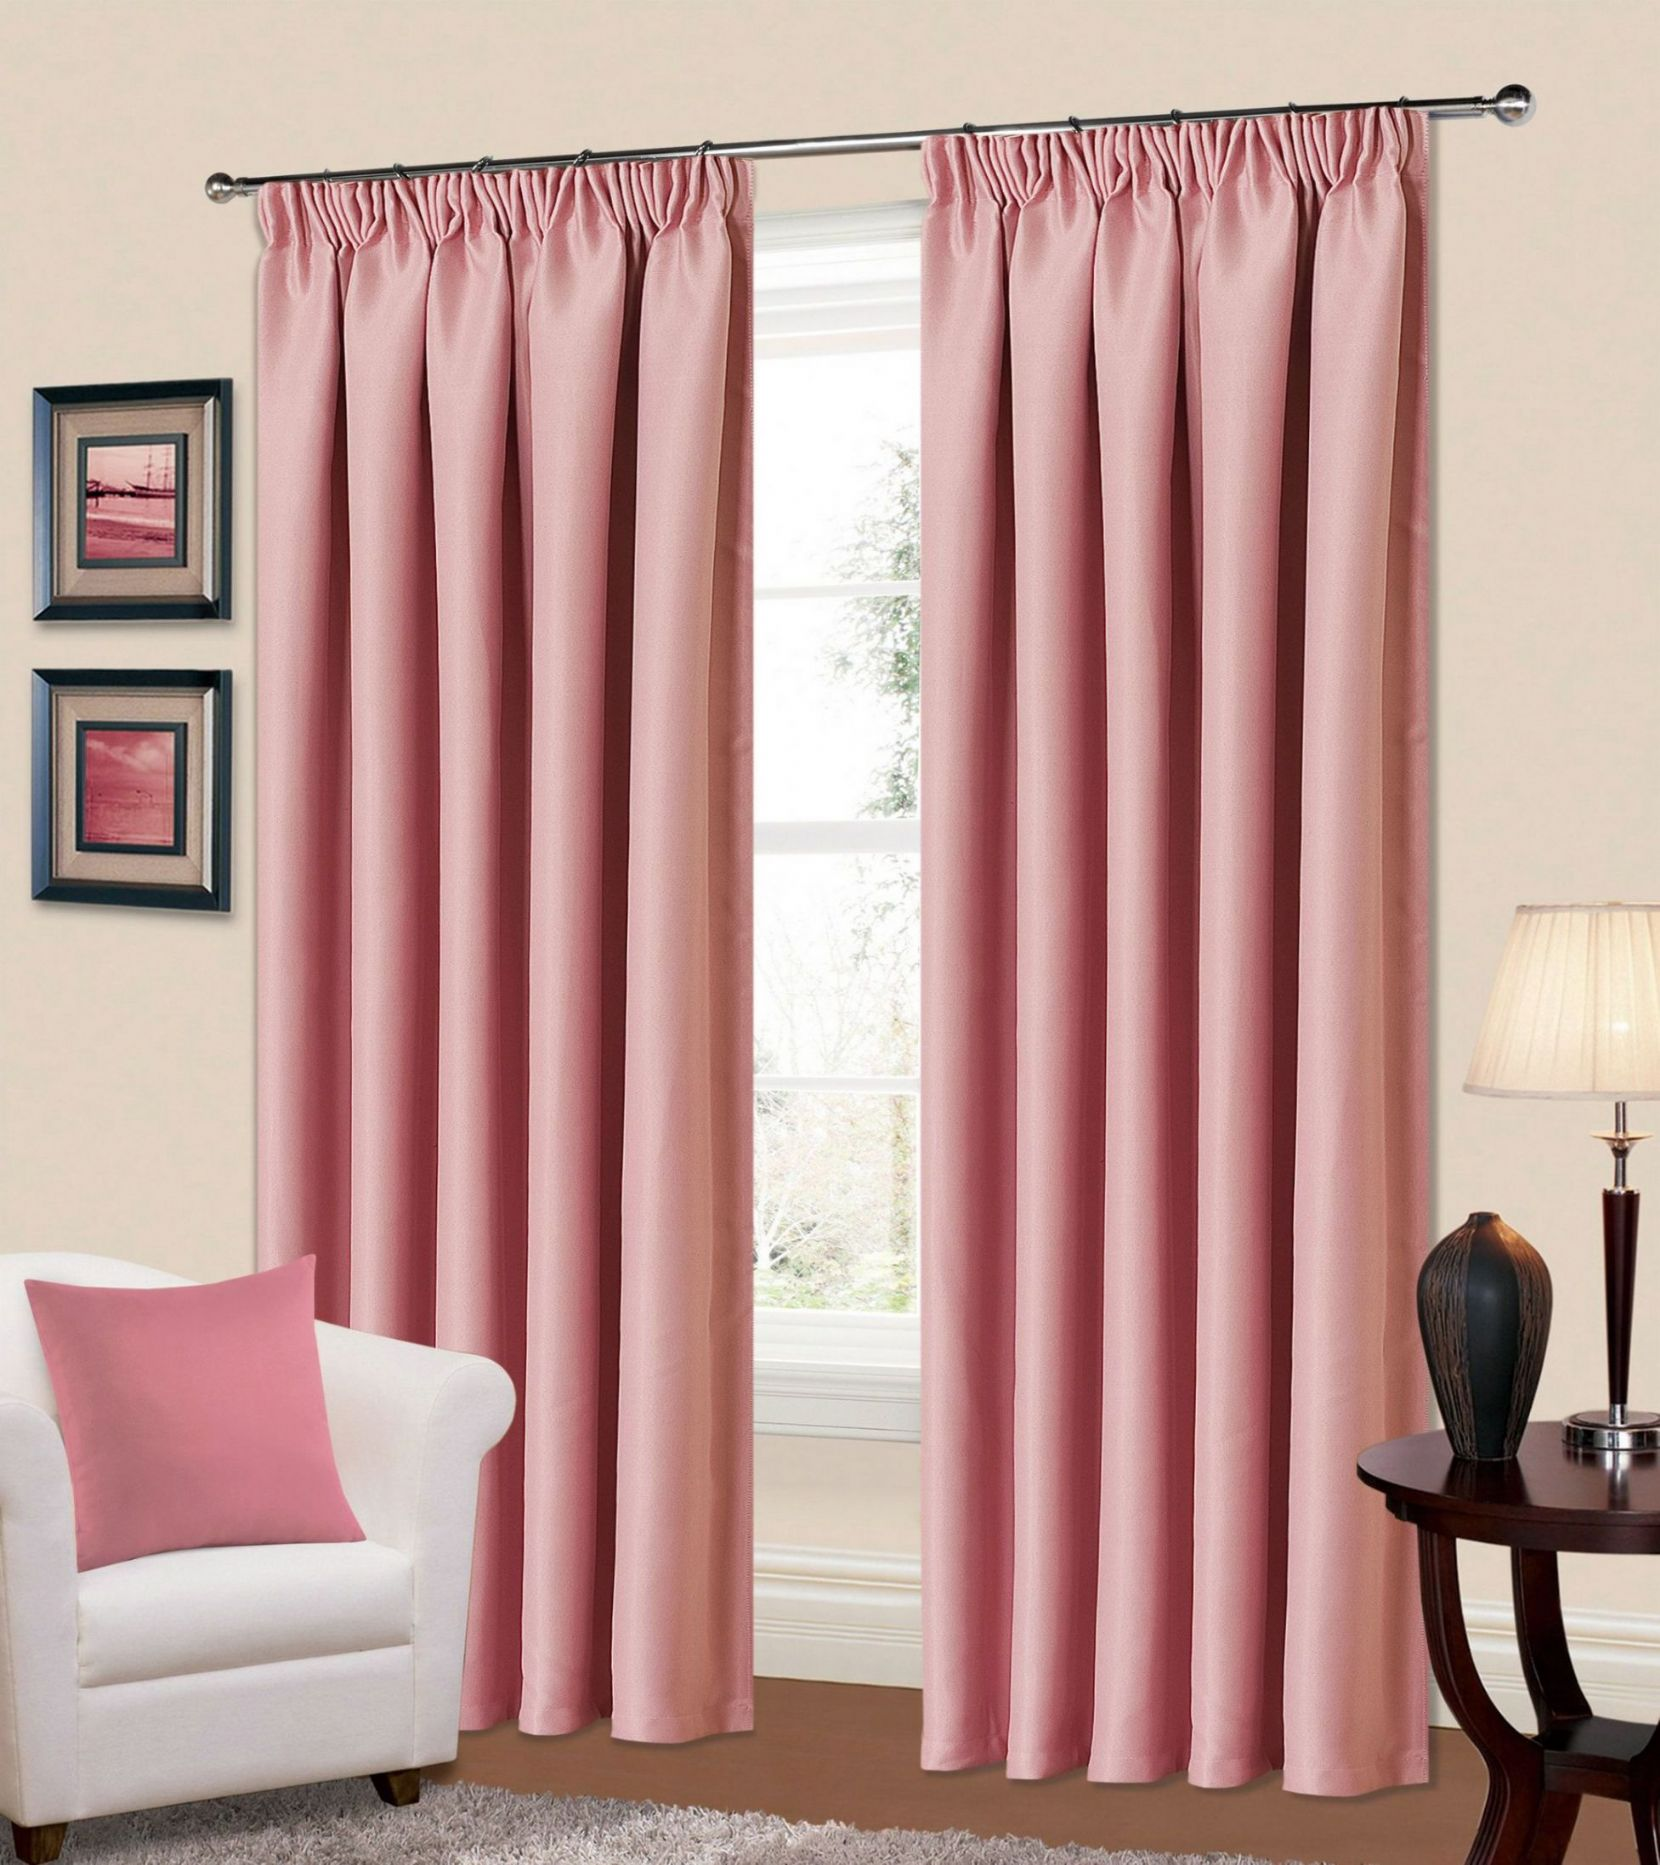 Ready Made Curtains 108 Drop Plain Baby Pink Colour Thermal Blackout Bedroom Livingroom